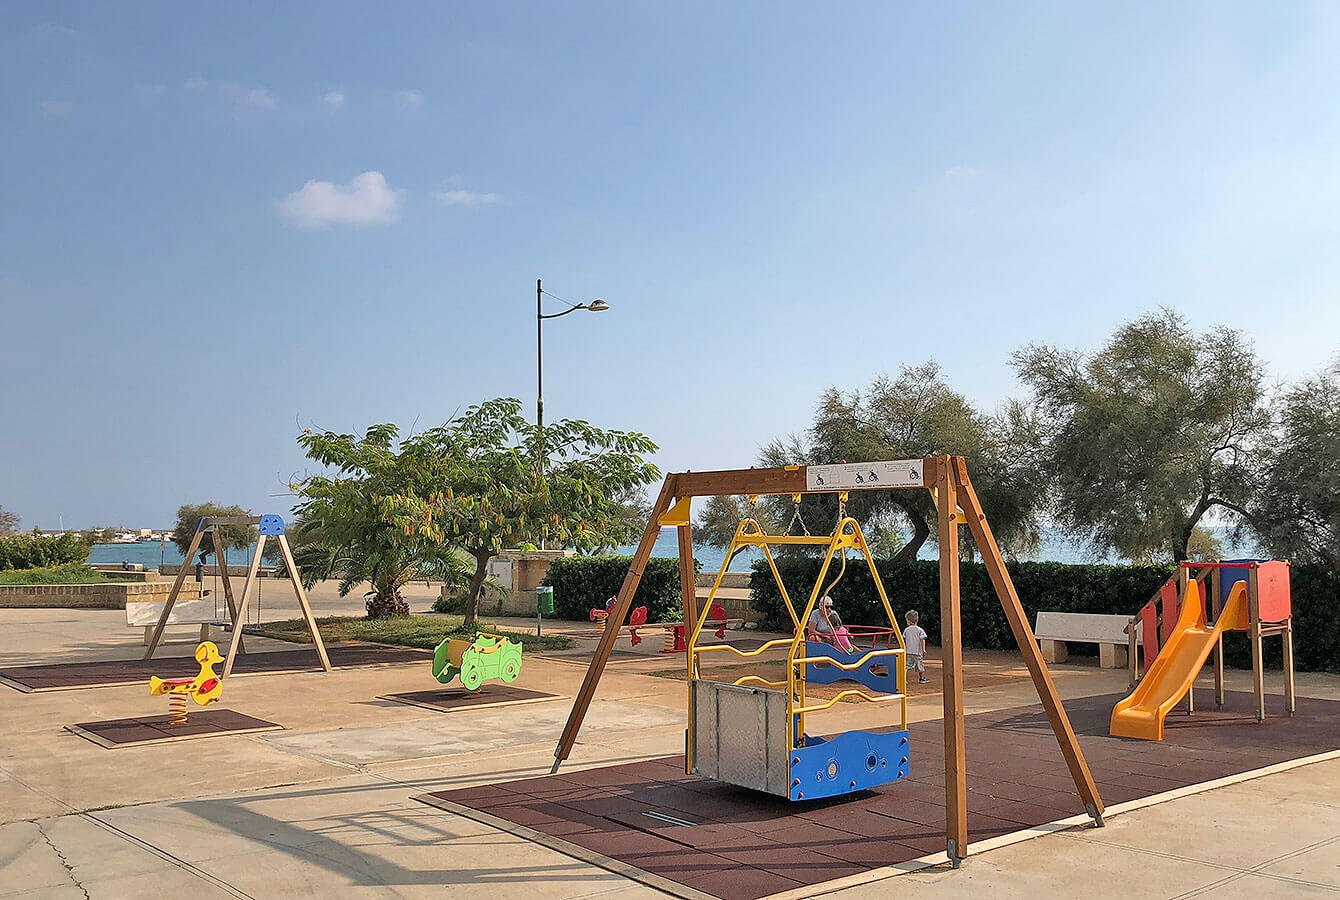 Children's playground at Torre Pali